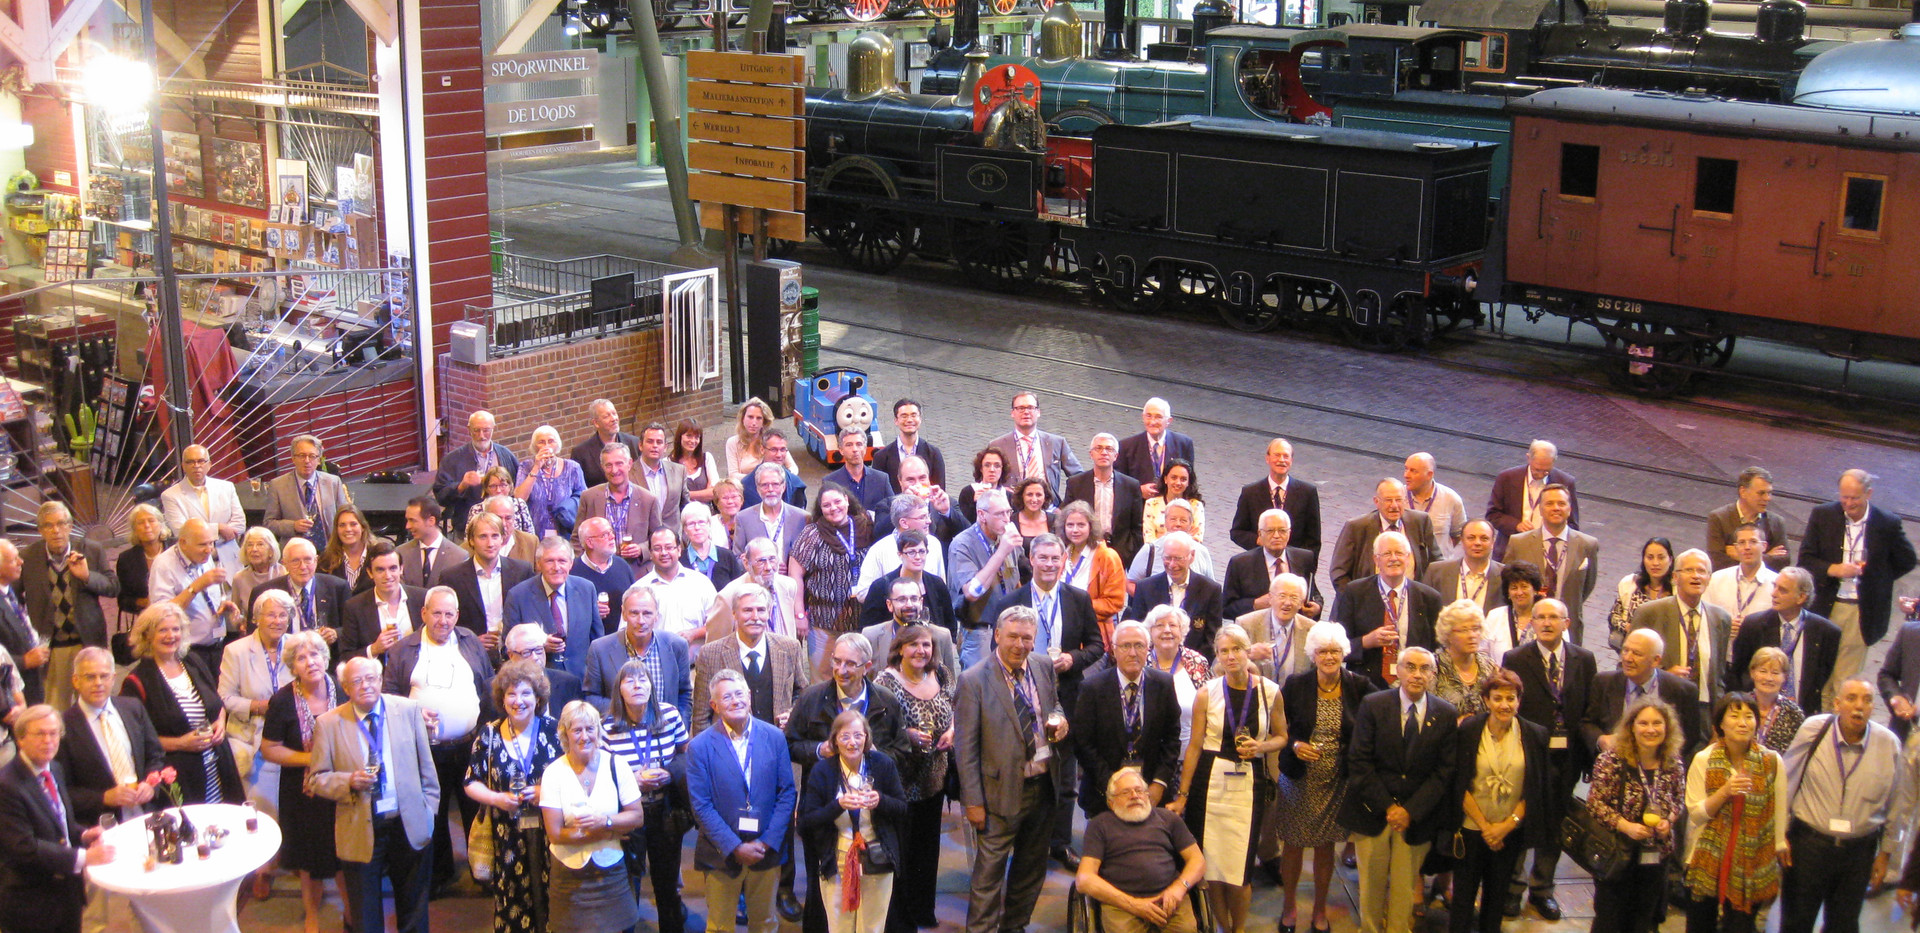 Delegates at the Railway Museum 2012